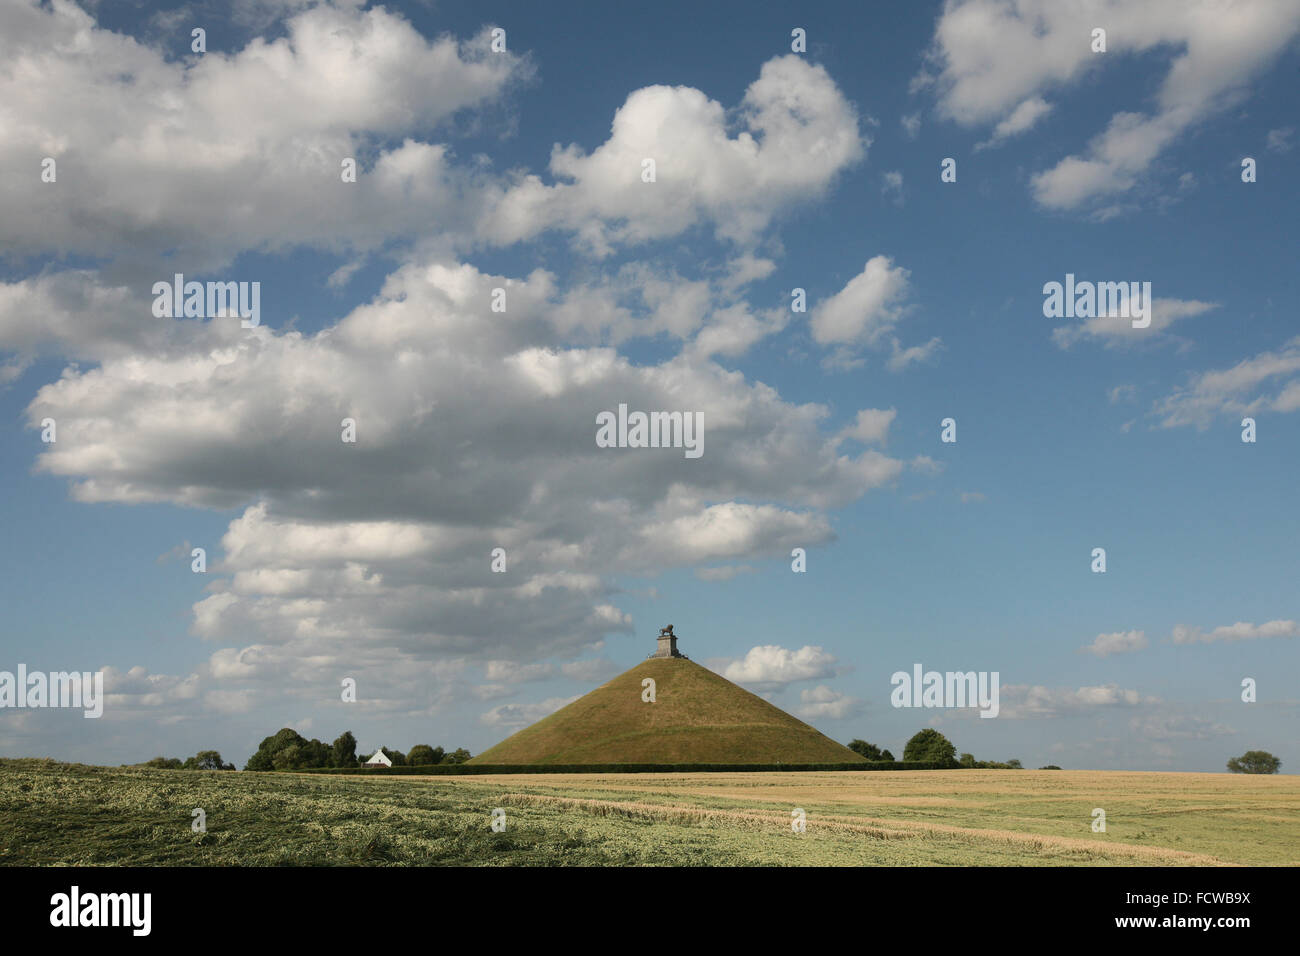 Lion's Mound over the battlefield of the Battle of Waterloo (1815) near Brussels, Belgium. - Stock Image